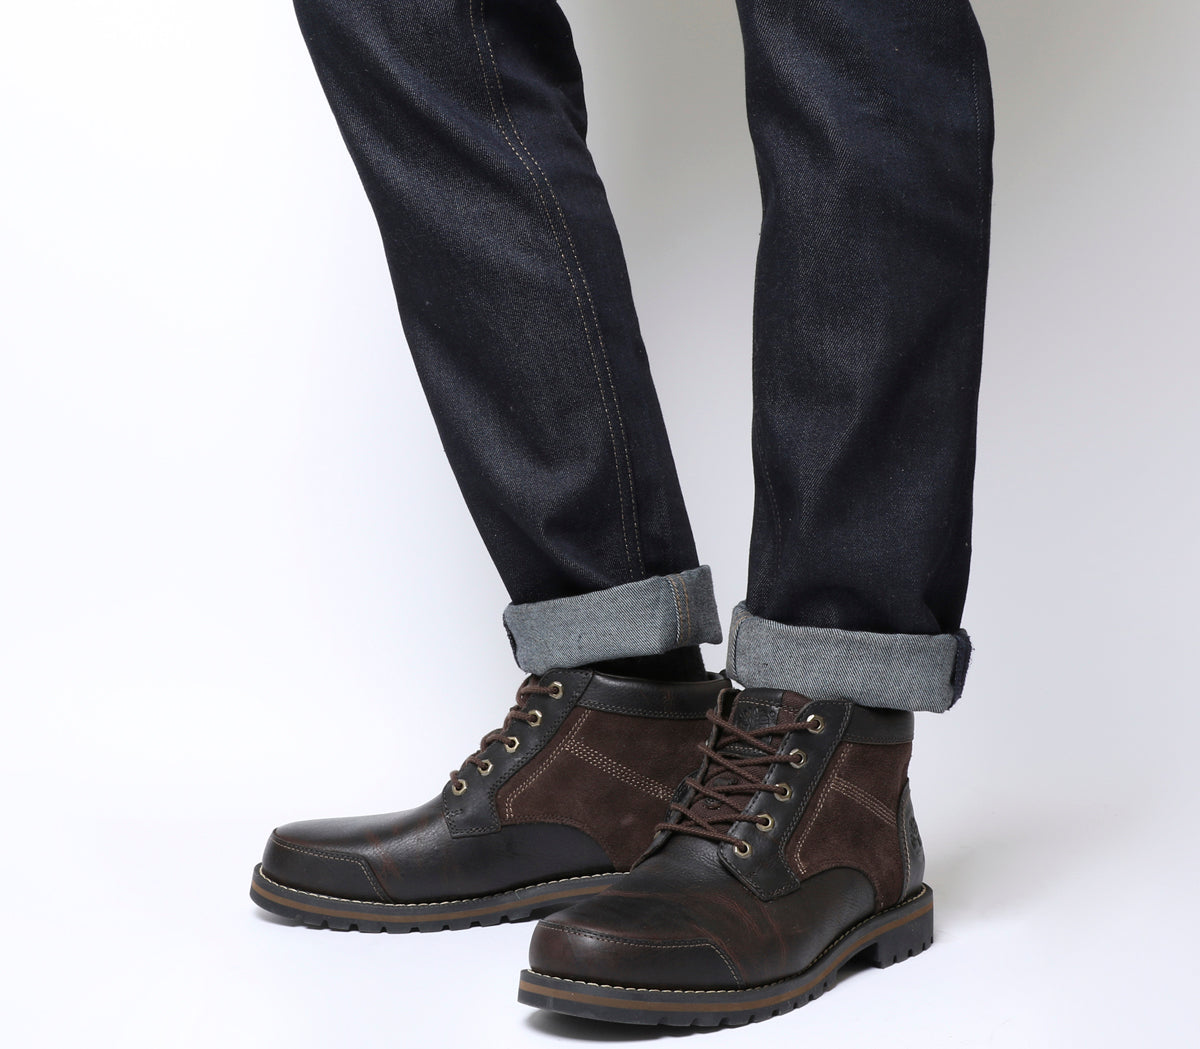 Hacer Pastor verano  Mens Timberland Larchmont Chukka Dark Brown Leather Boots – OFFCUTS SHOES  by OFFICE